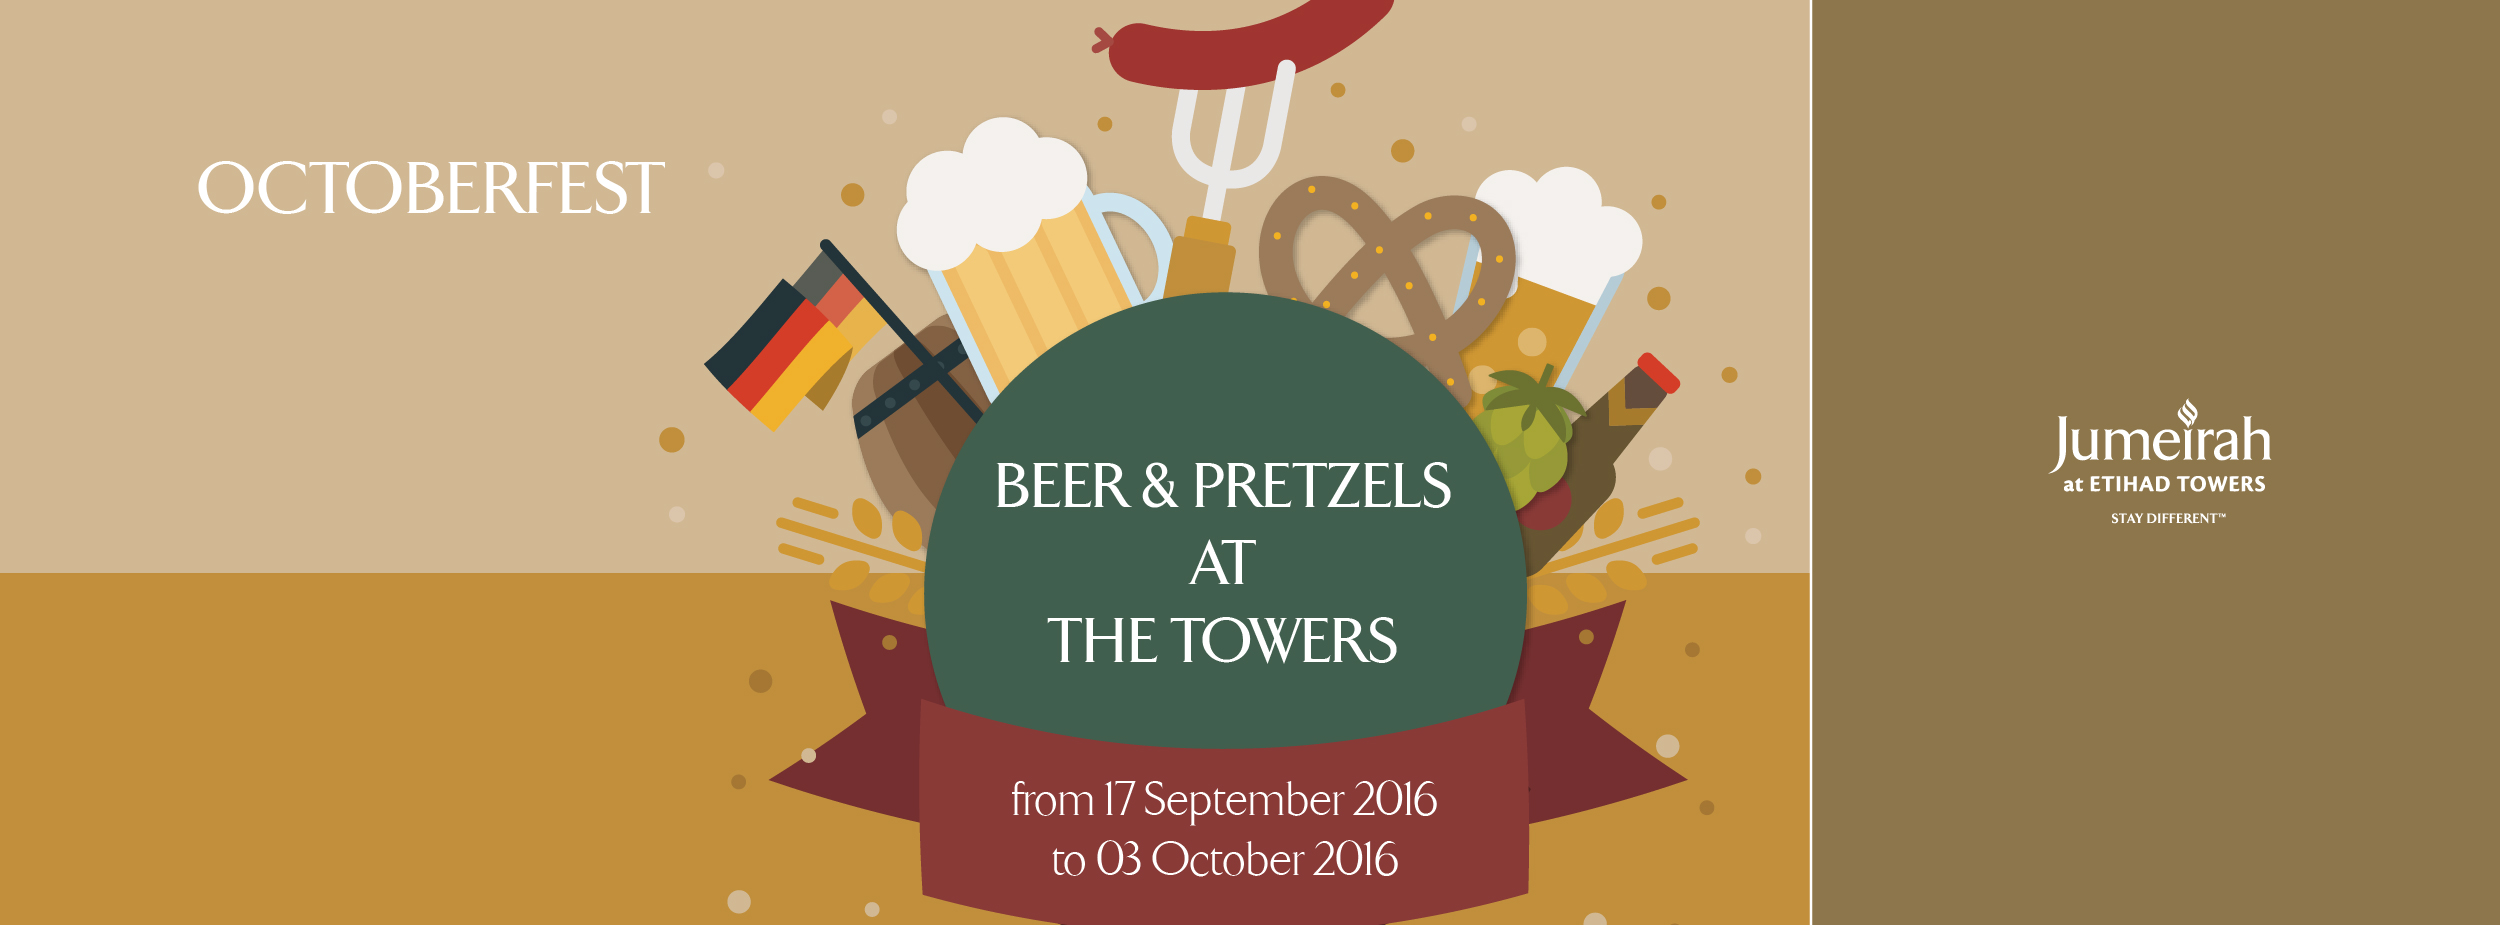 Oktoberfest at The Towers